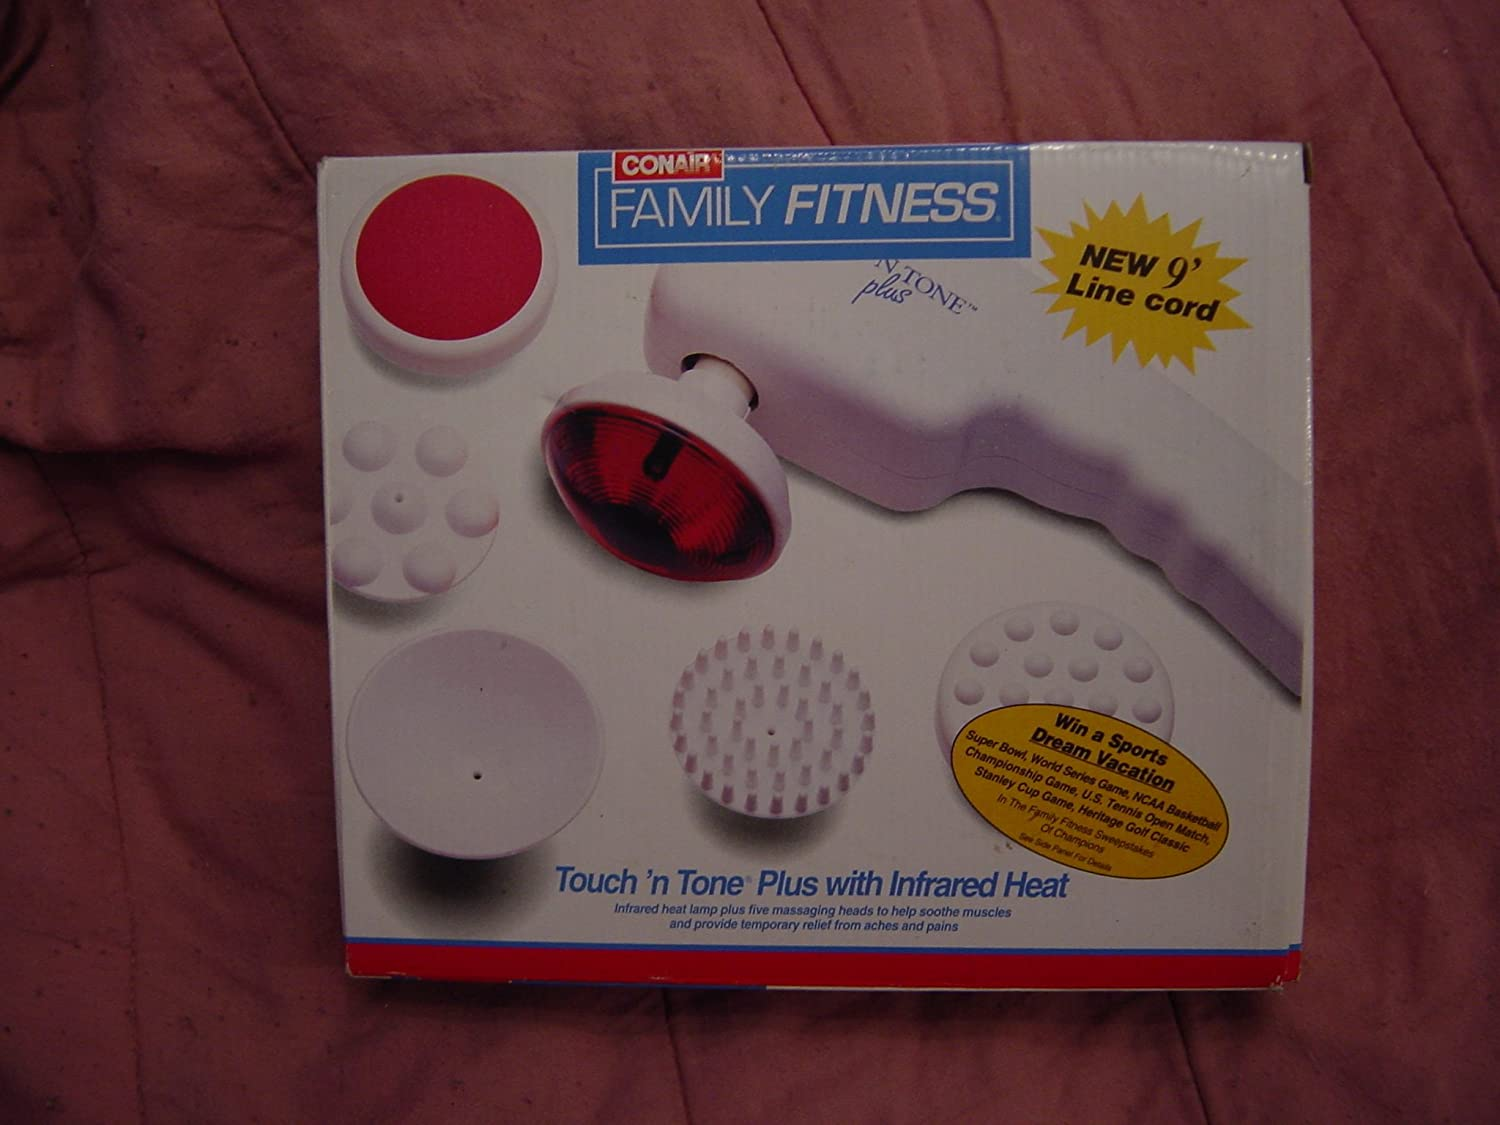 amazoncom conair family fitness touchu0027n tone plus with infrared heat health u0026 personal care